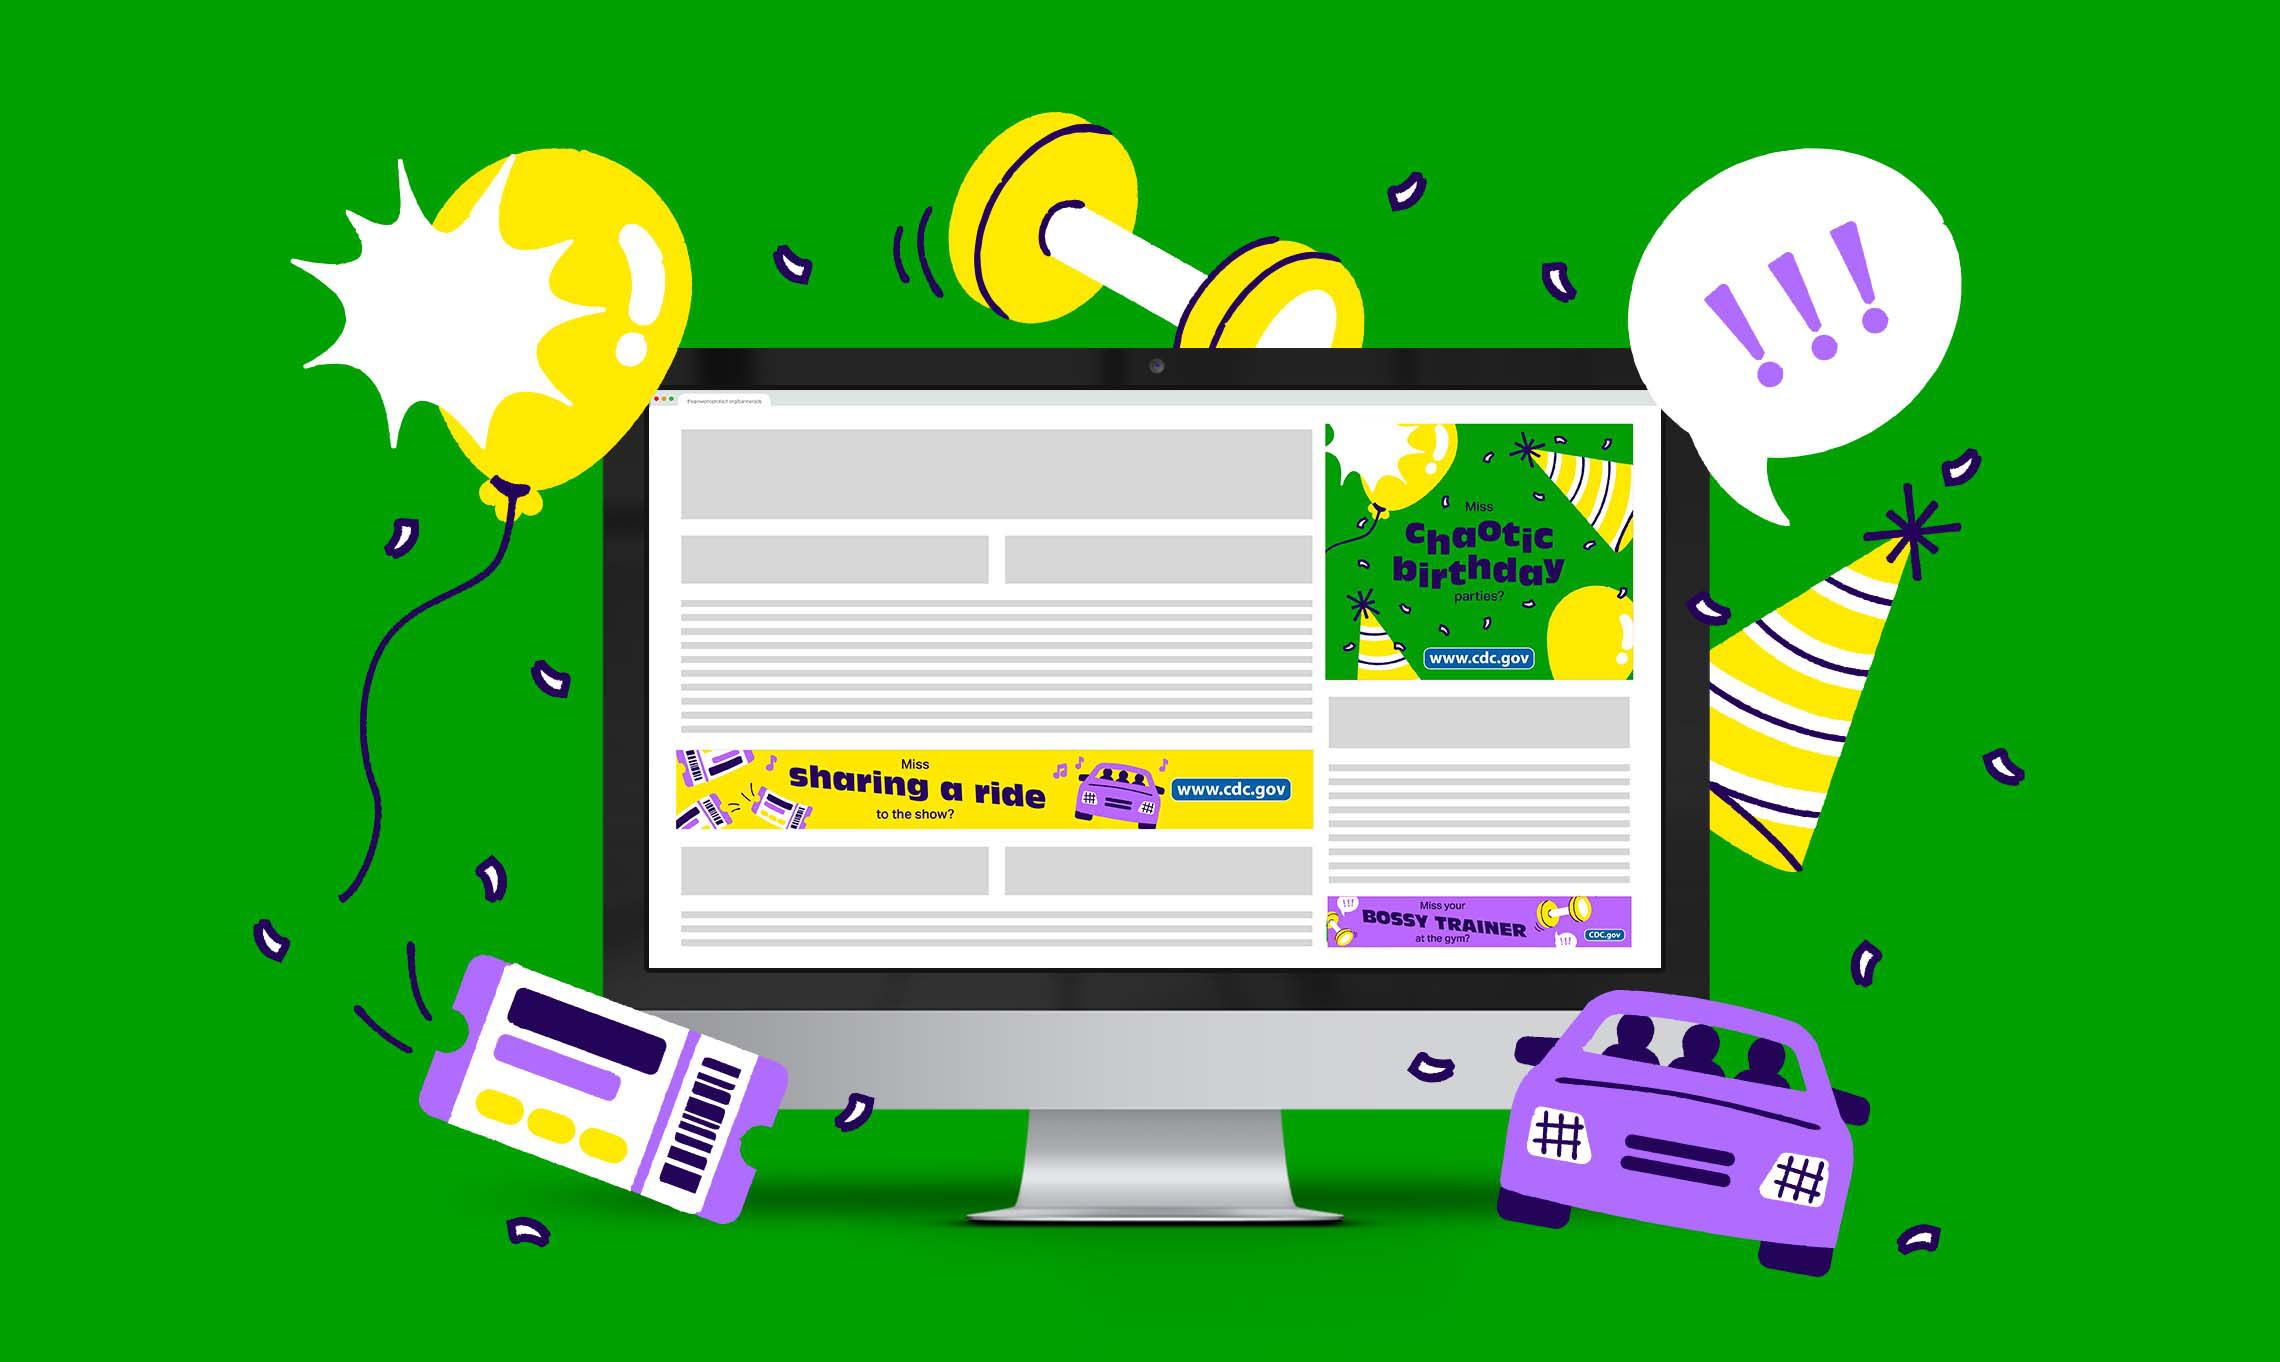 A computer showing social ads on an illustrated webpage with illustrations from the ad surrounding the computer.